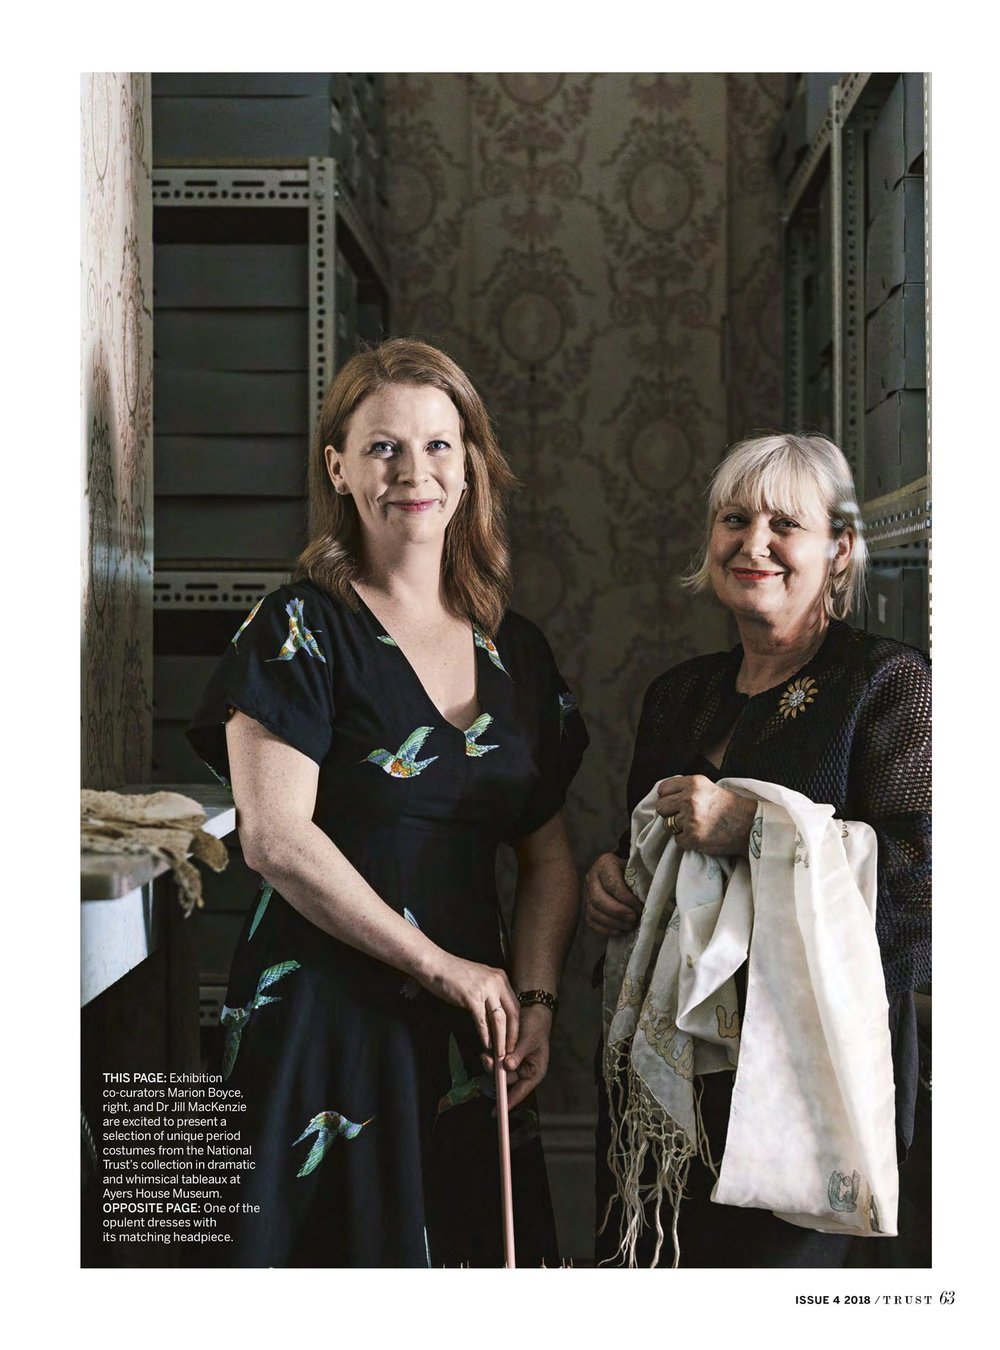 Marnie Hawson, Melbourne lifestyle photography, for Ayers House, Adelaide and The National Trust, with Marion Boyce, costume designer.